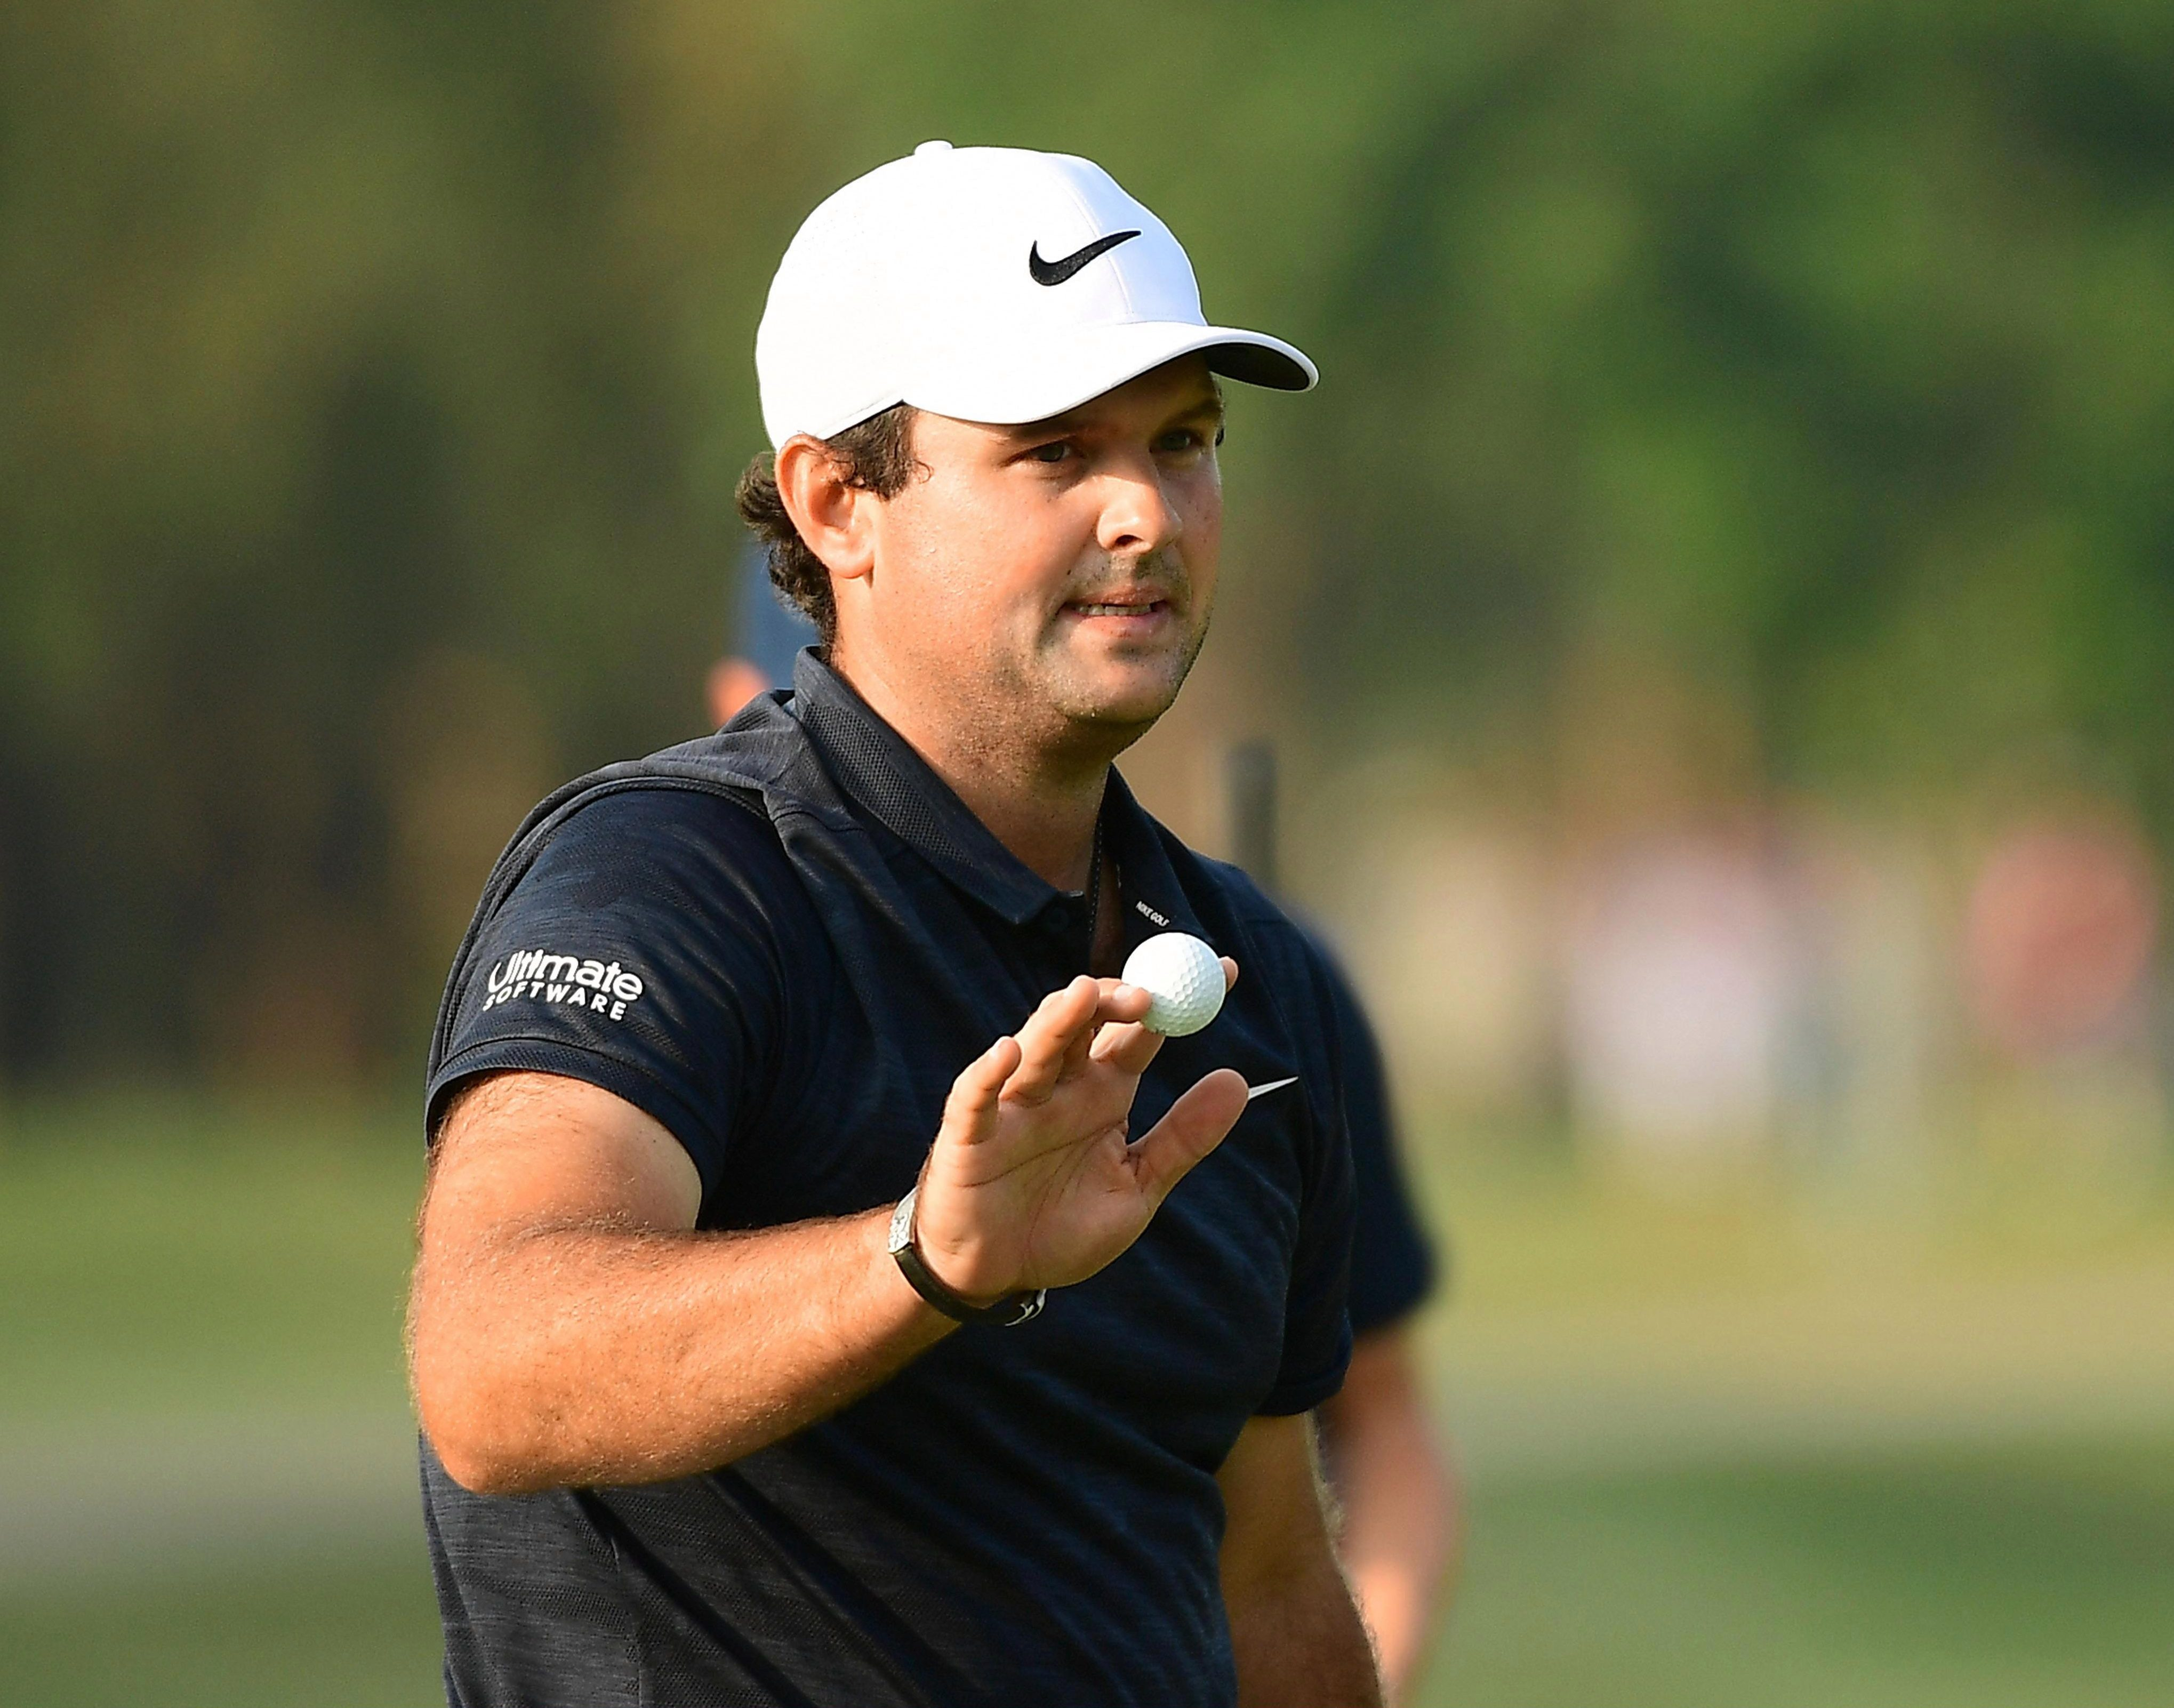 Masters champion Patrick Reed has been slammed by fellow PGA Tour star Kevin Kisner